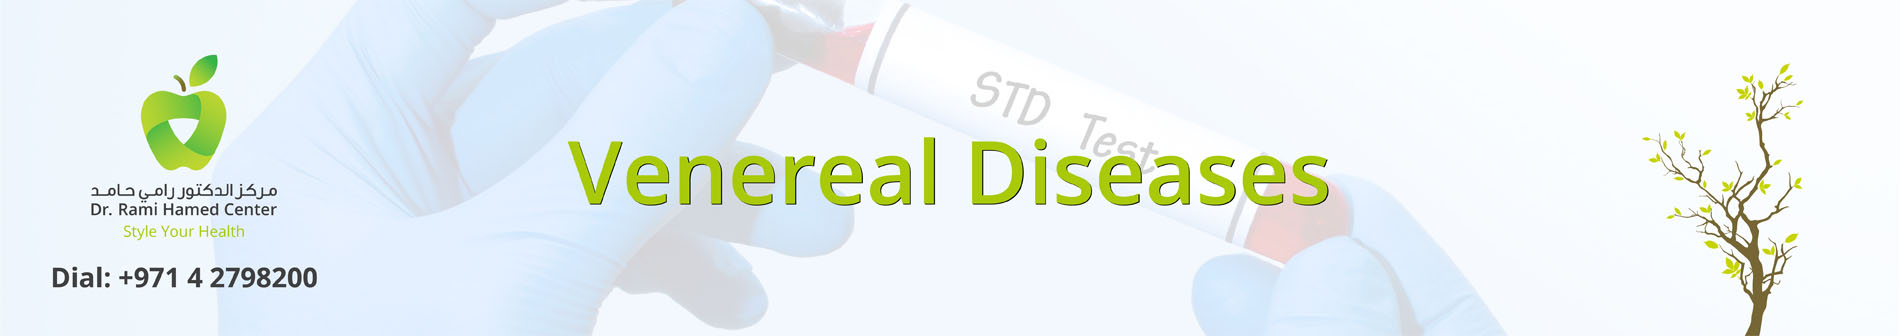 Dubai Sexually Transmitted Diseases Clinic